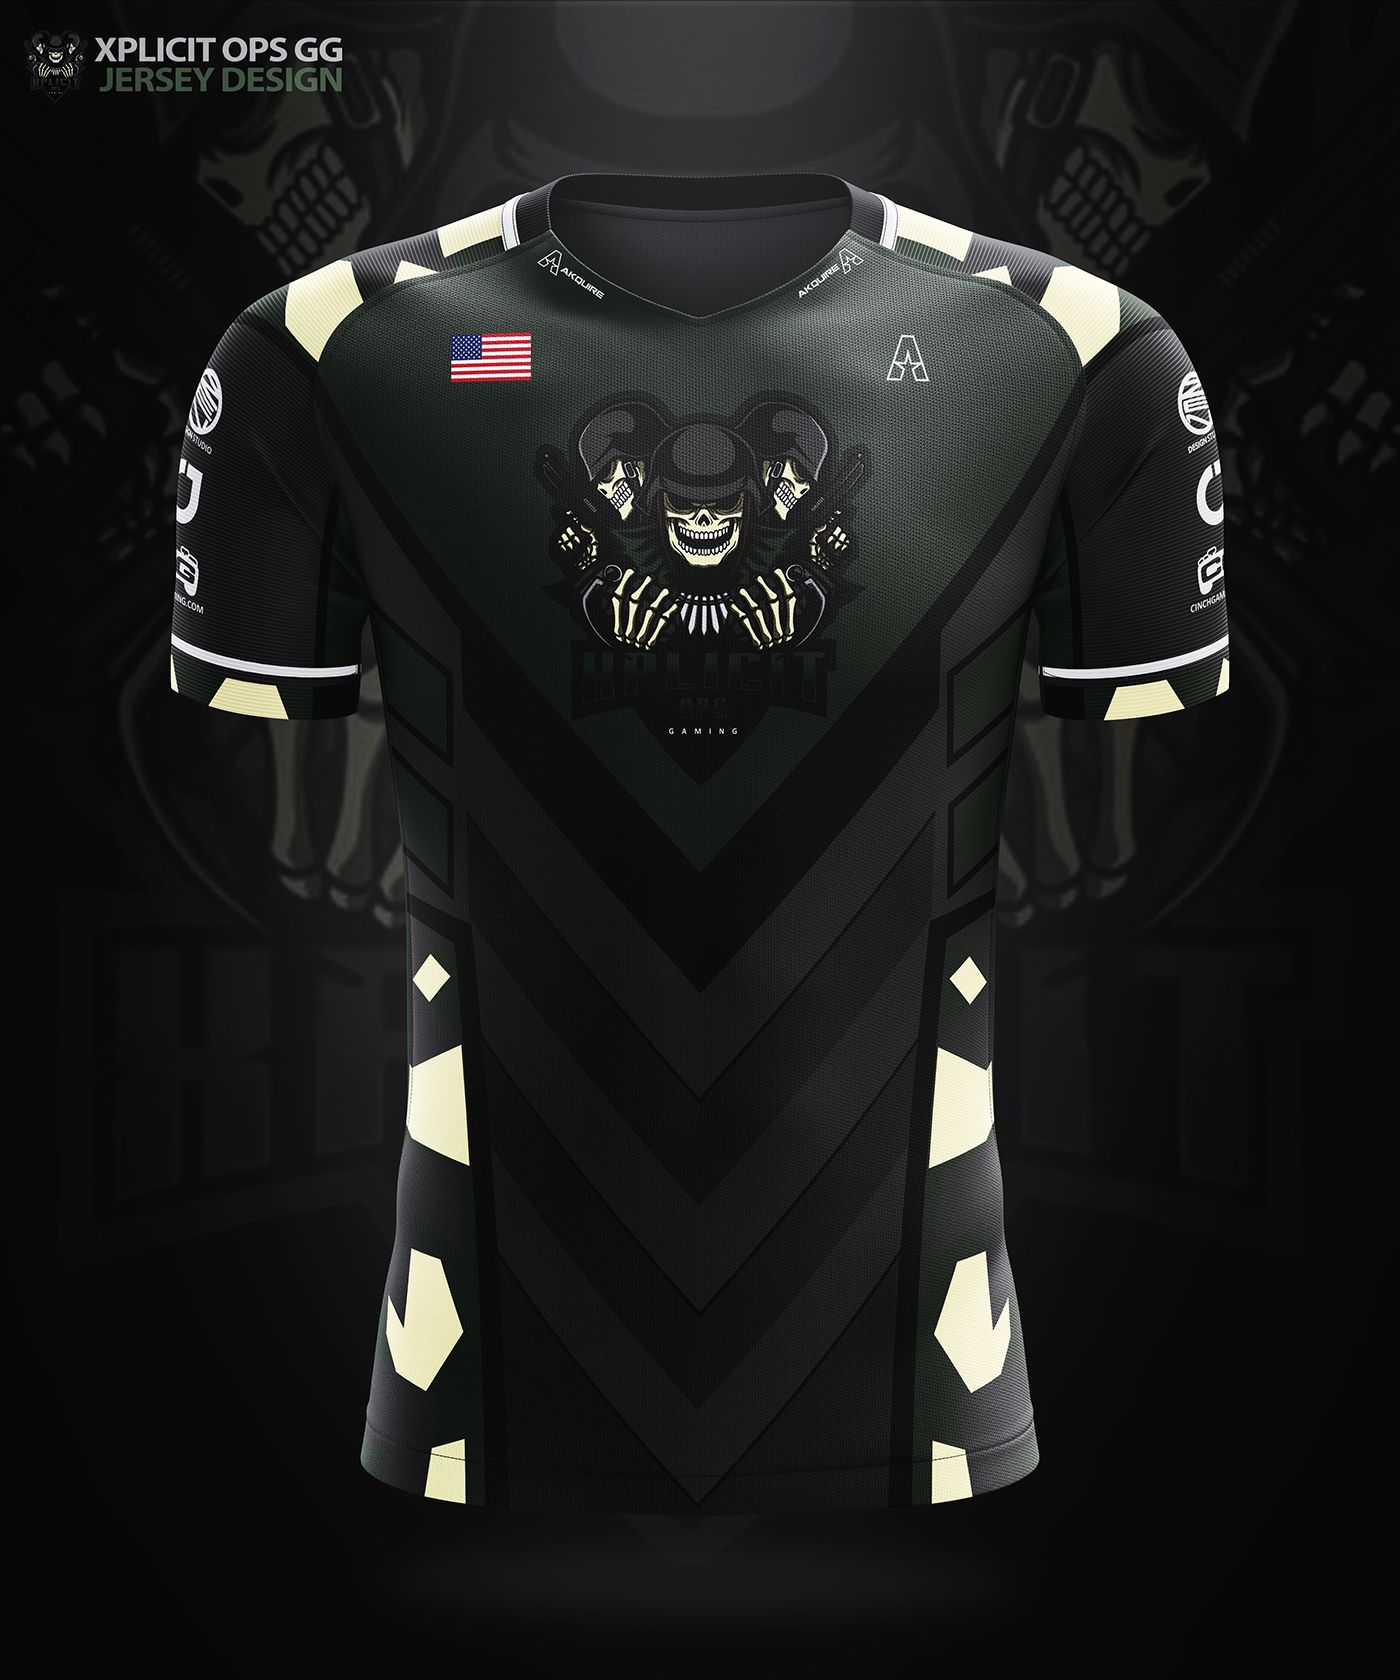 Akquire Clothing Co Esports Team Jersey Designs On Behance Jersey Design Sports Jersey Design Volleyball Jersey Design